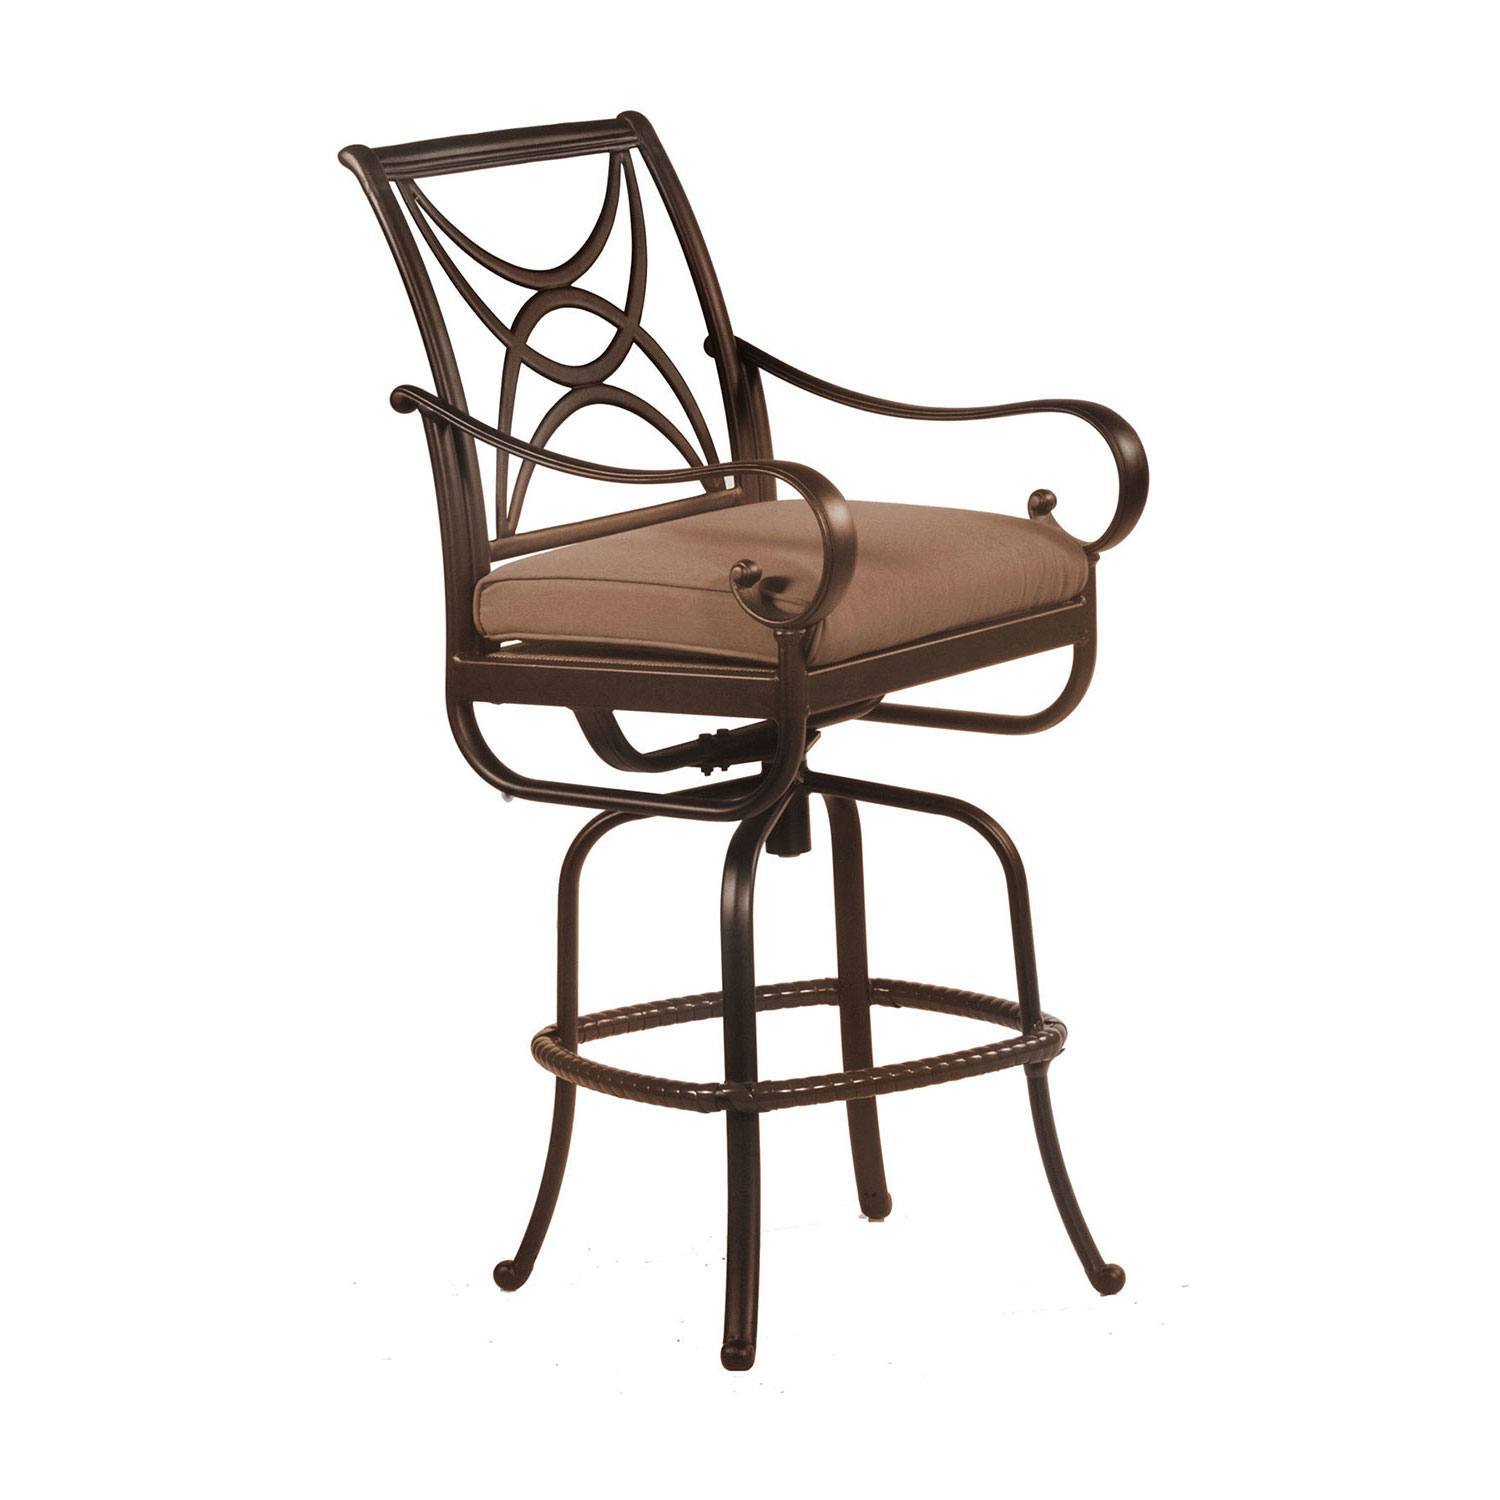 Alumont Santa Barbara Cushion Swivel Counter Stool